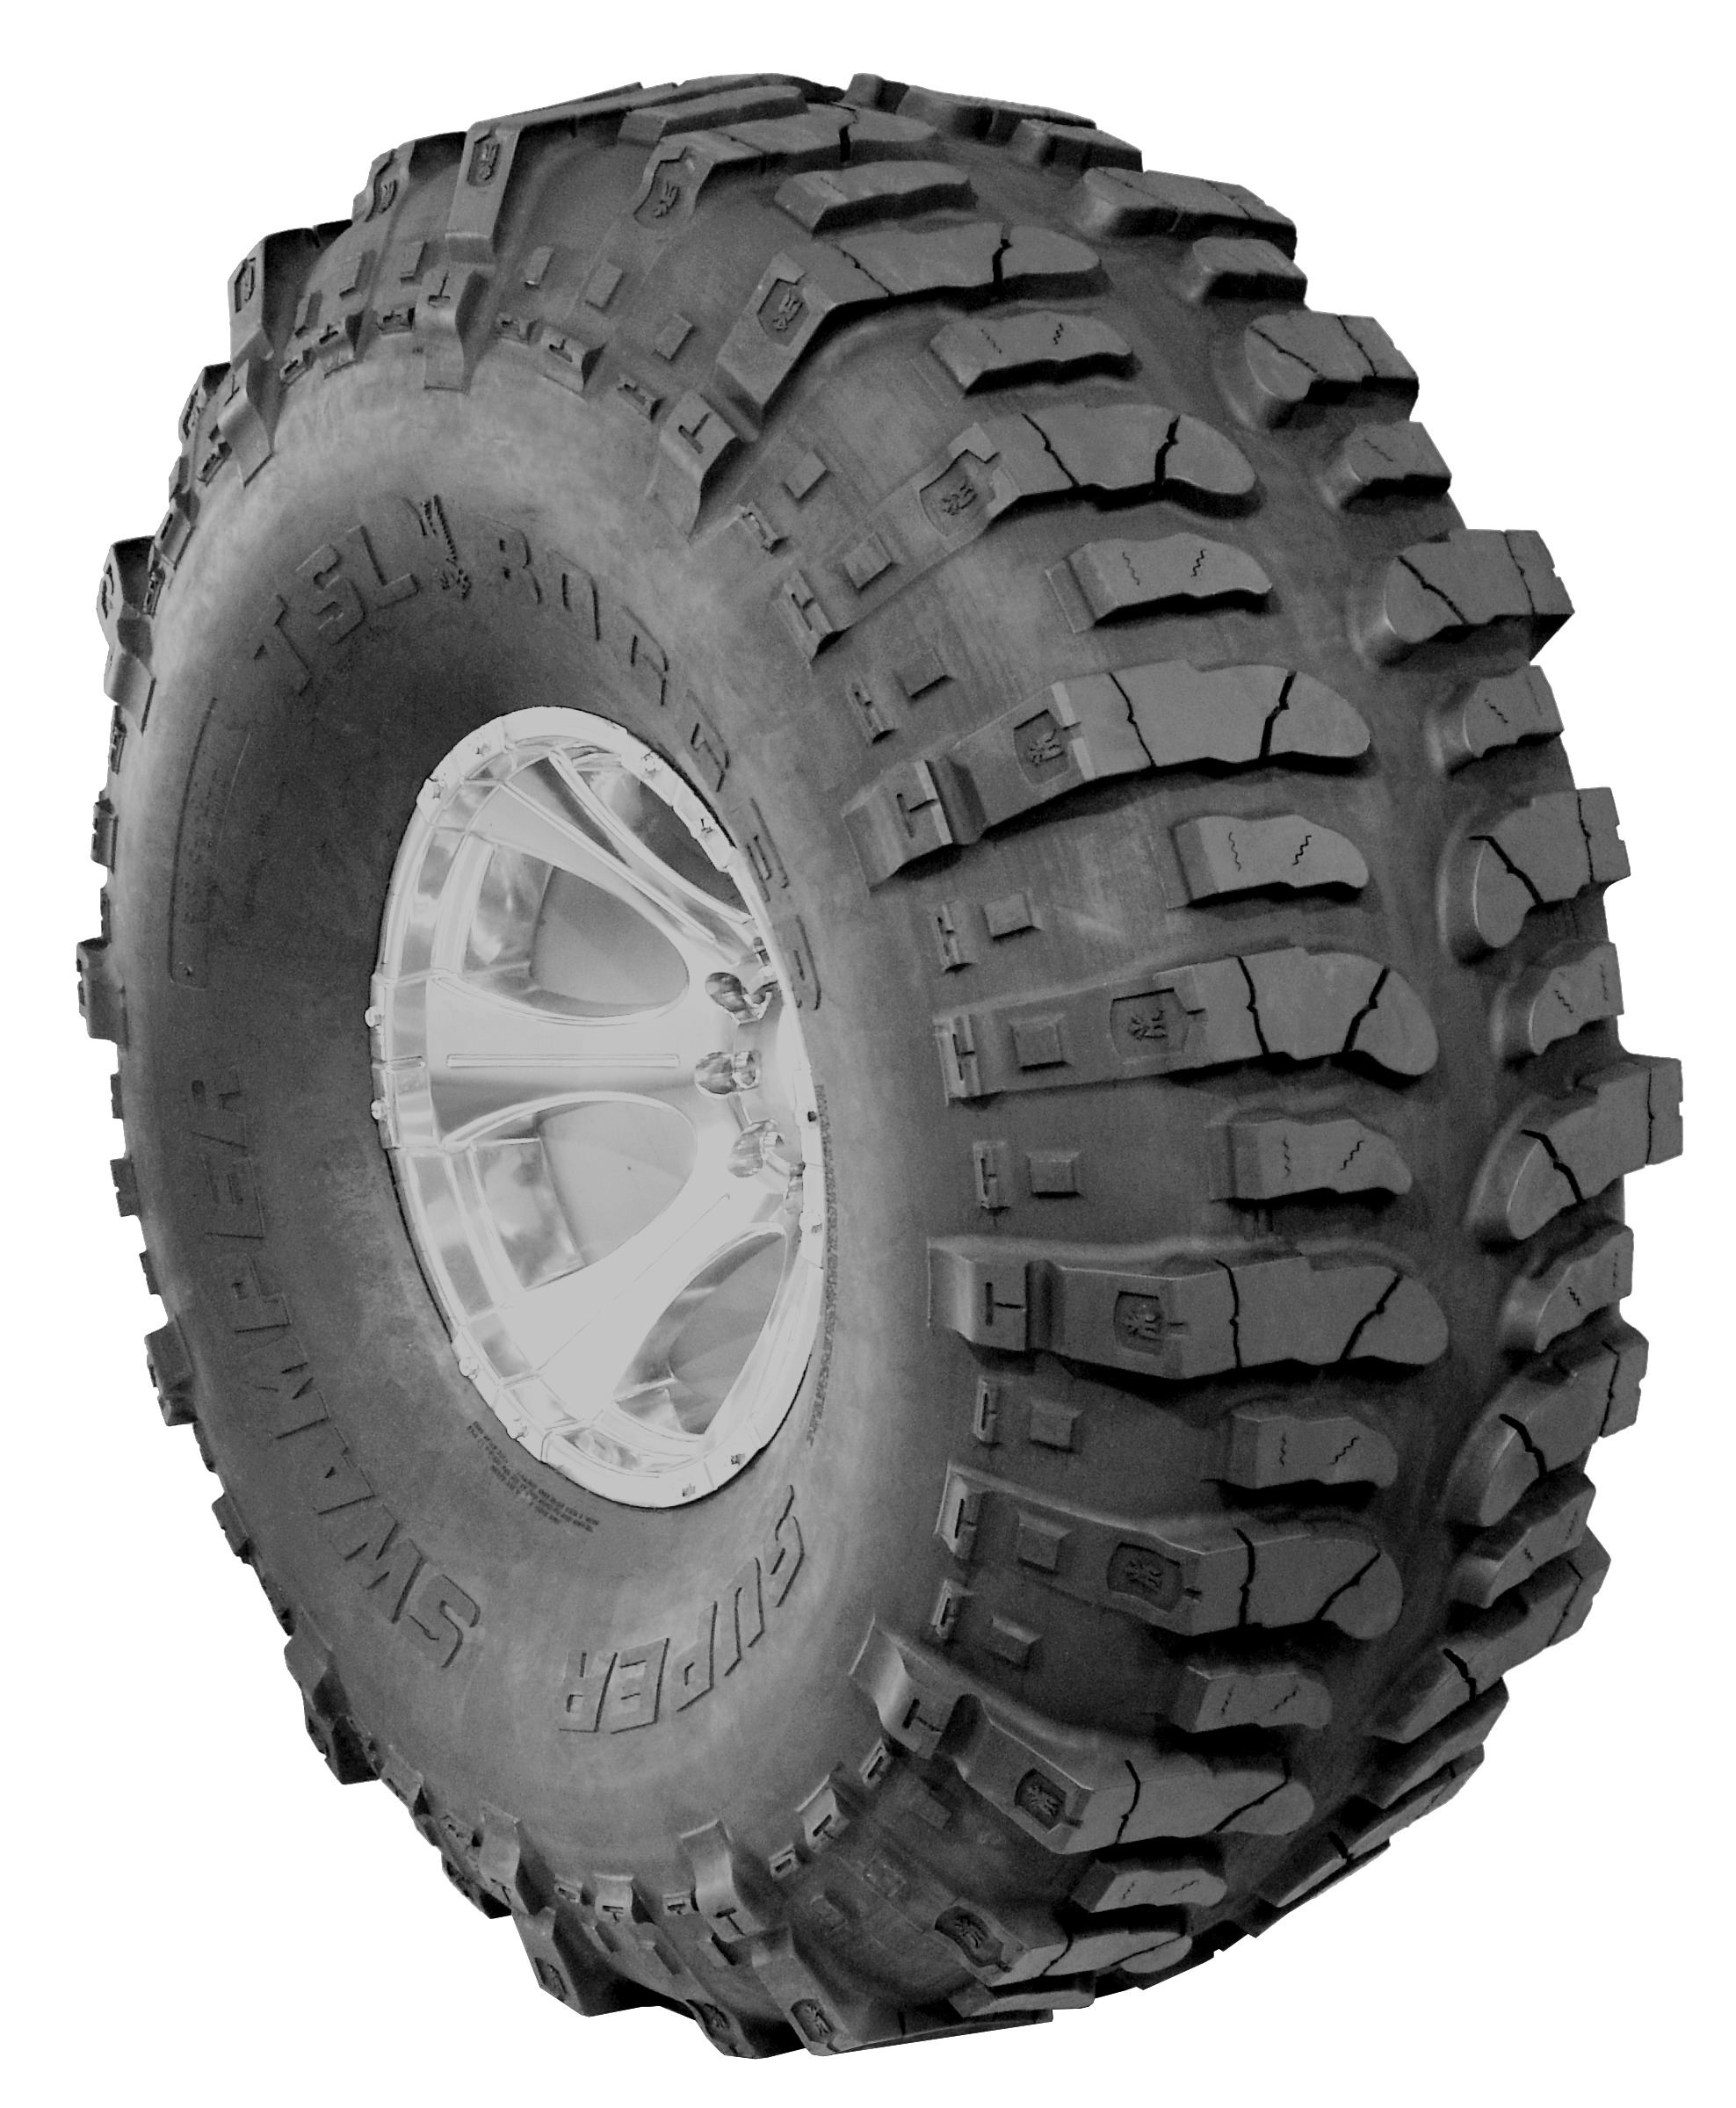 svg black and white download Tires clipart. Mud tire free on